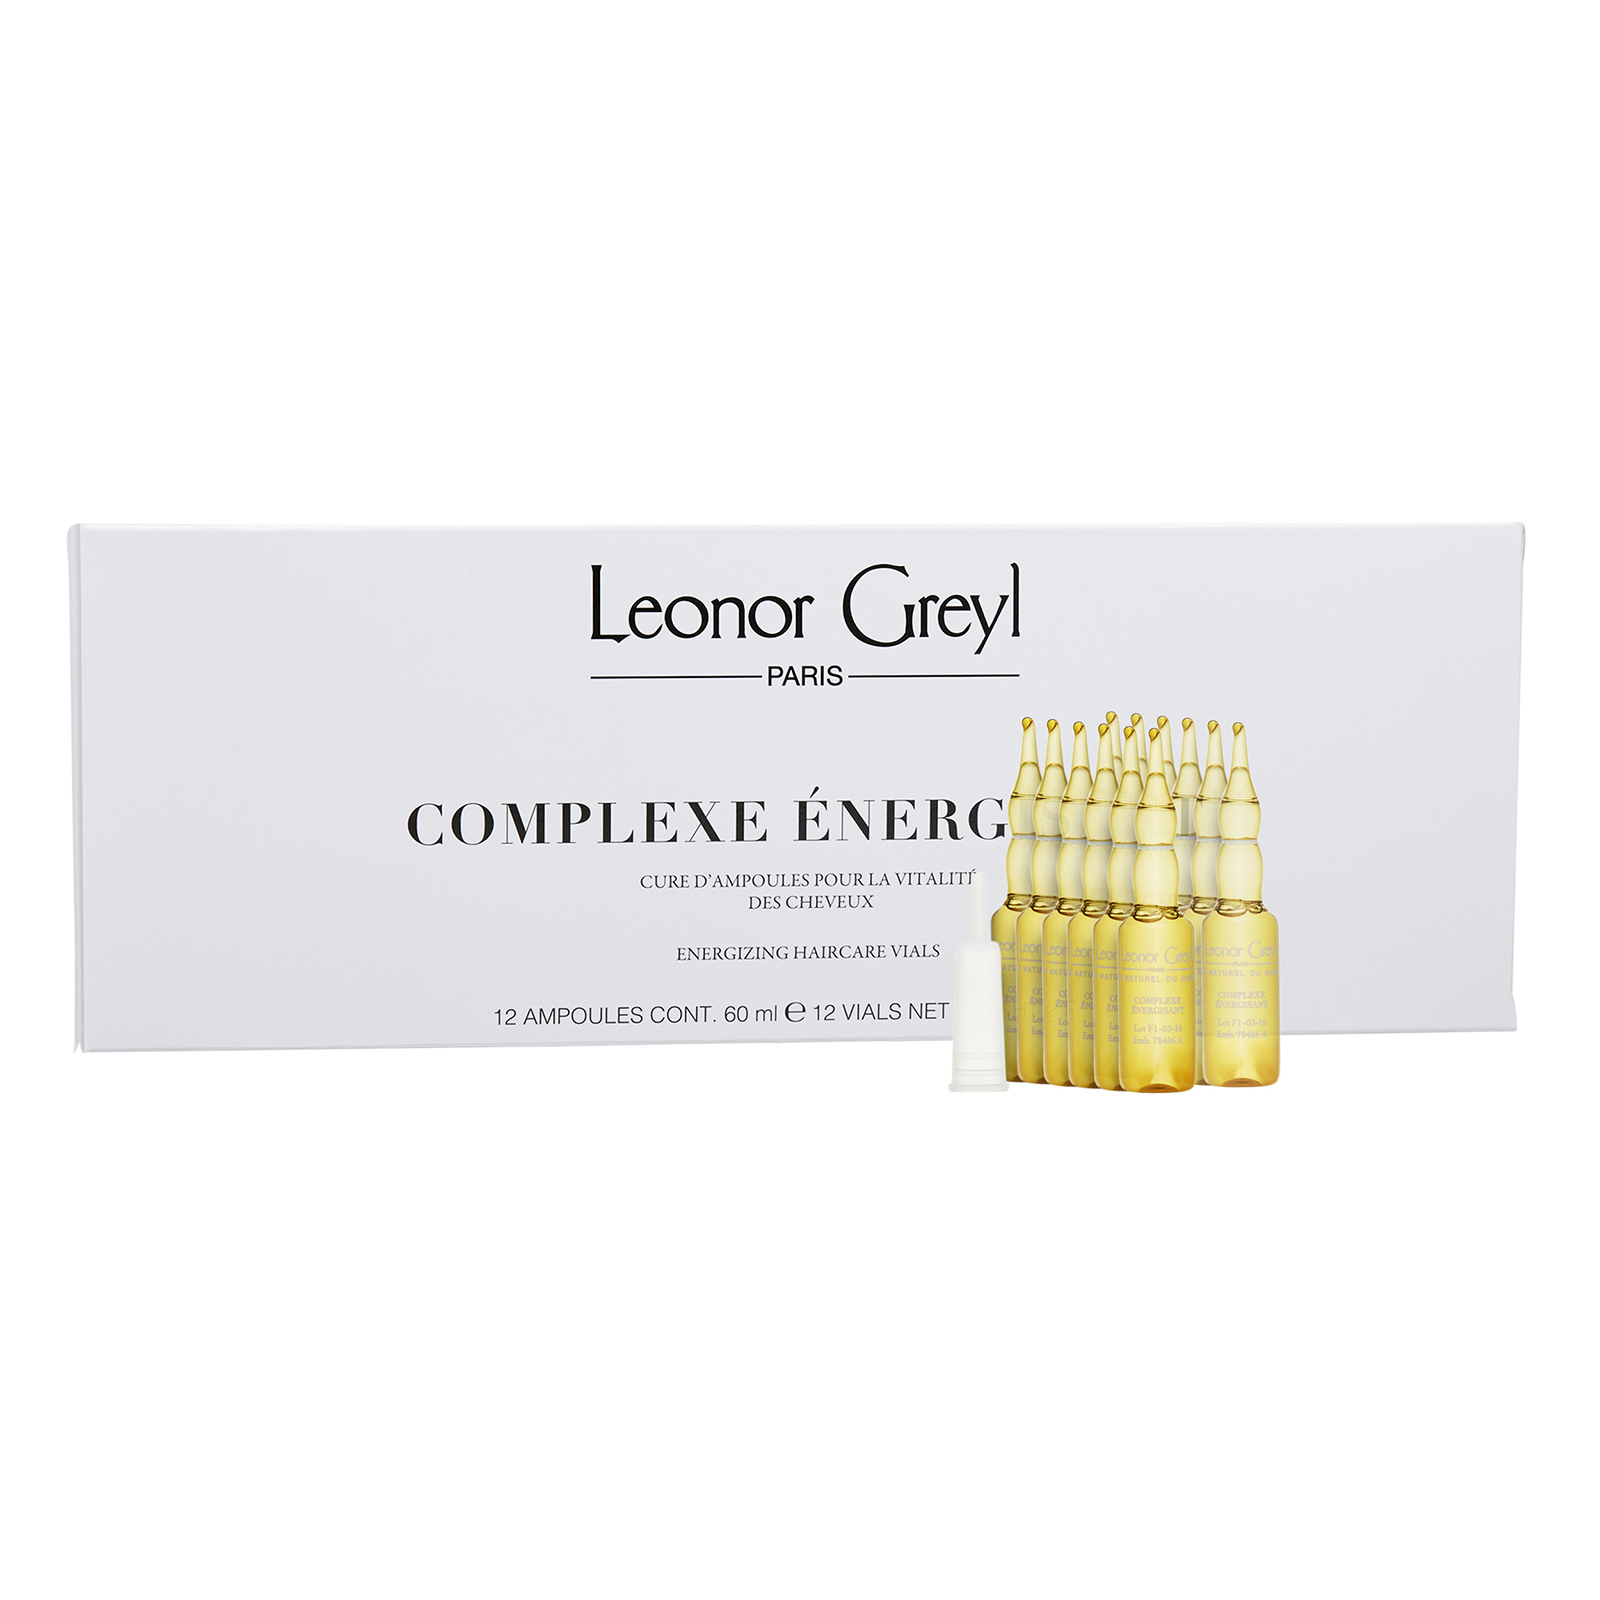 Leonor Greyl  Complexe Energisant Energizing Haircare Vials  0.6 ml x 12 Vials,